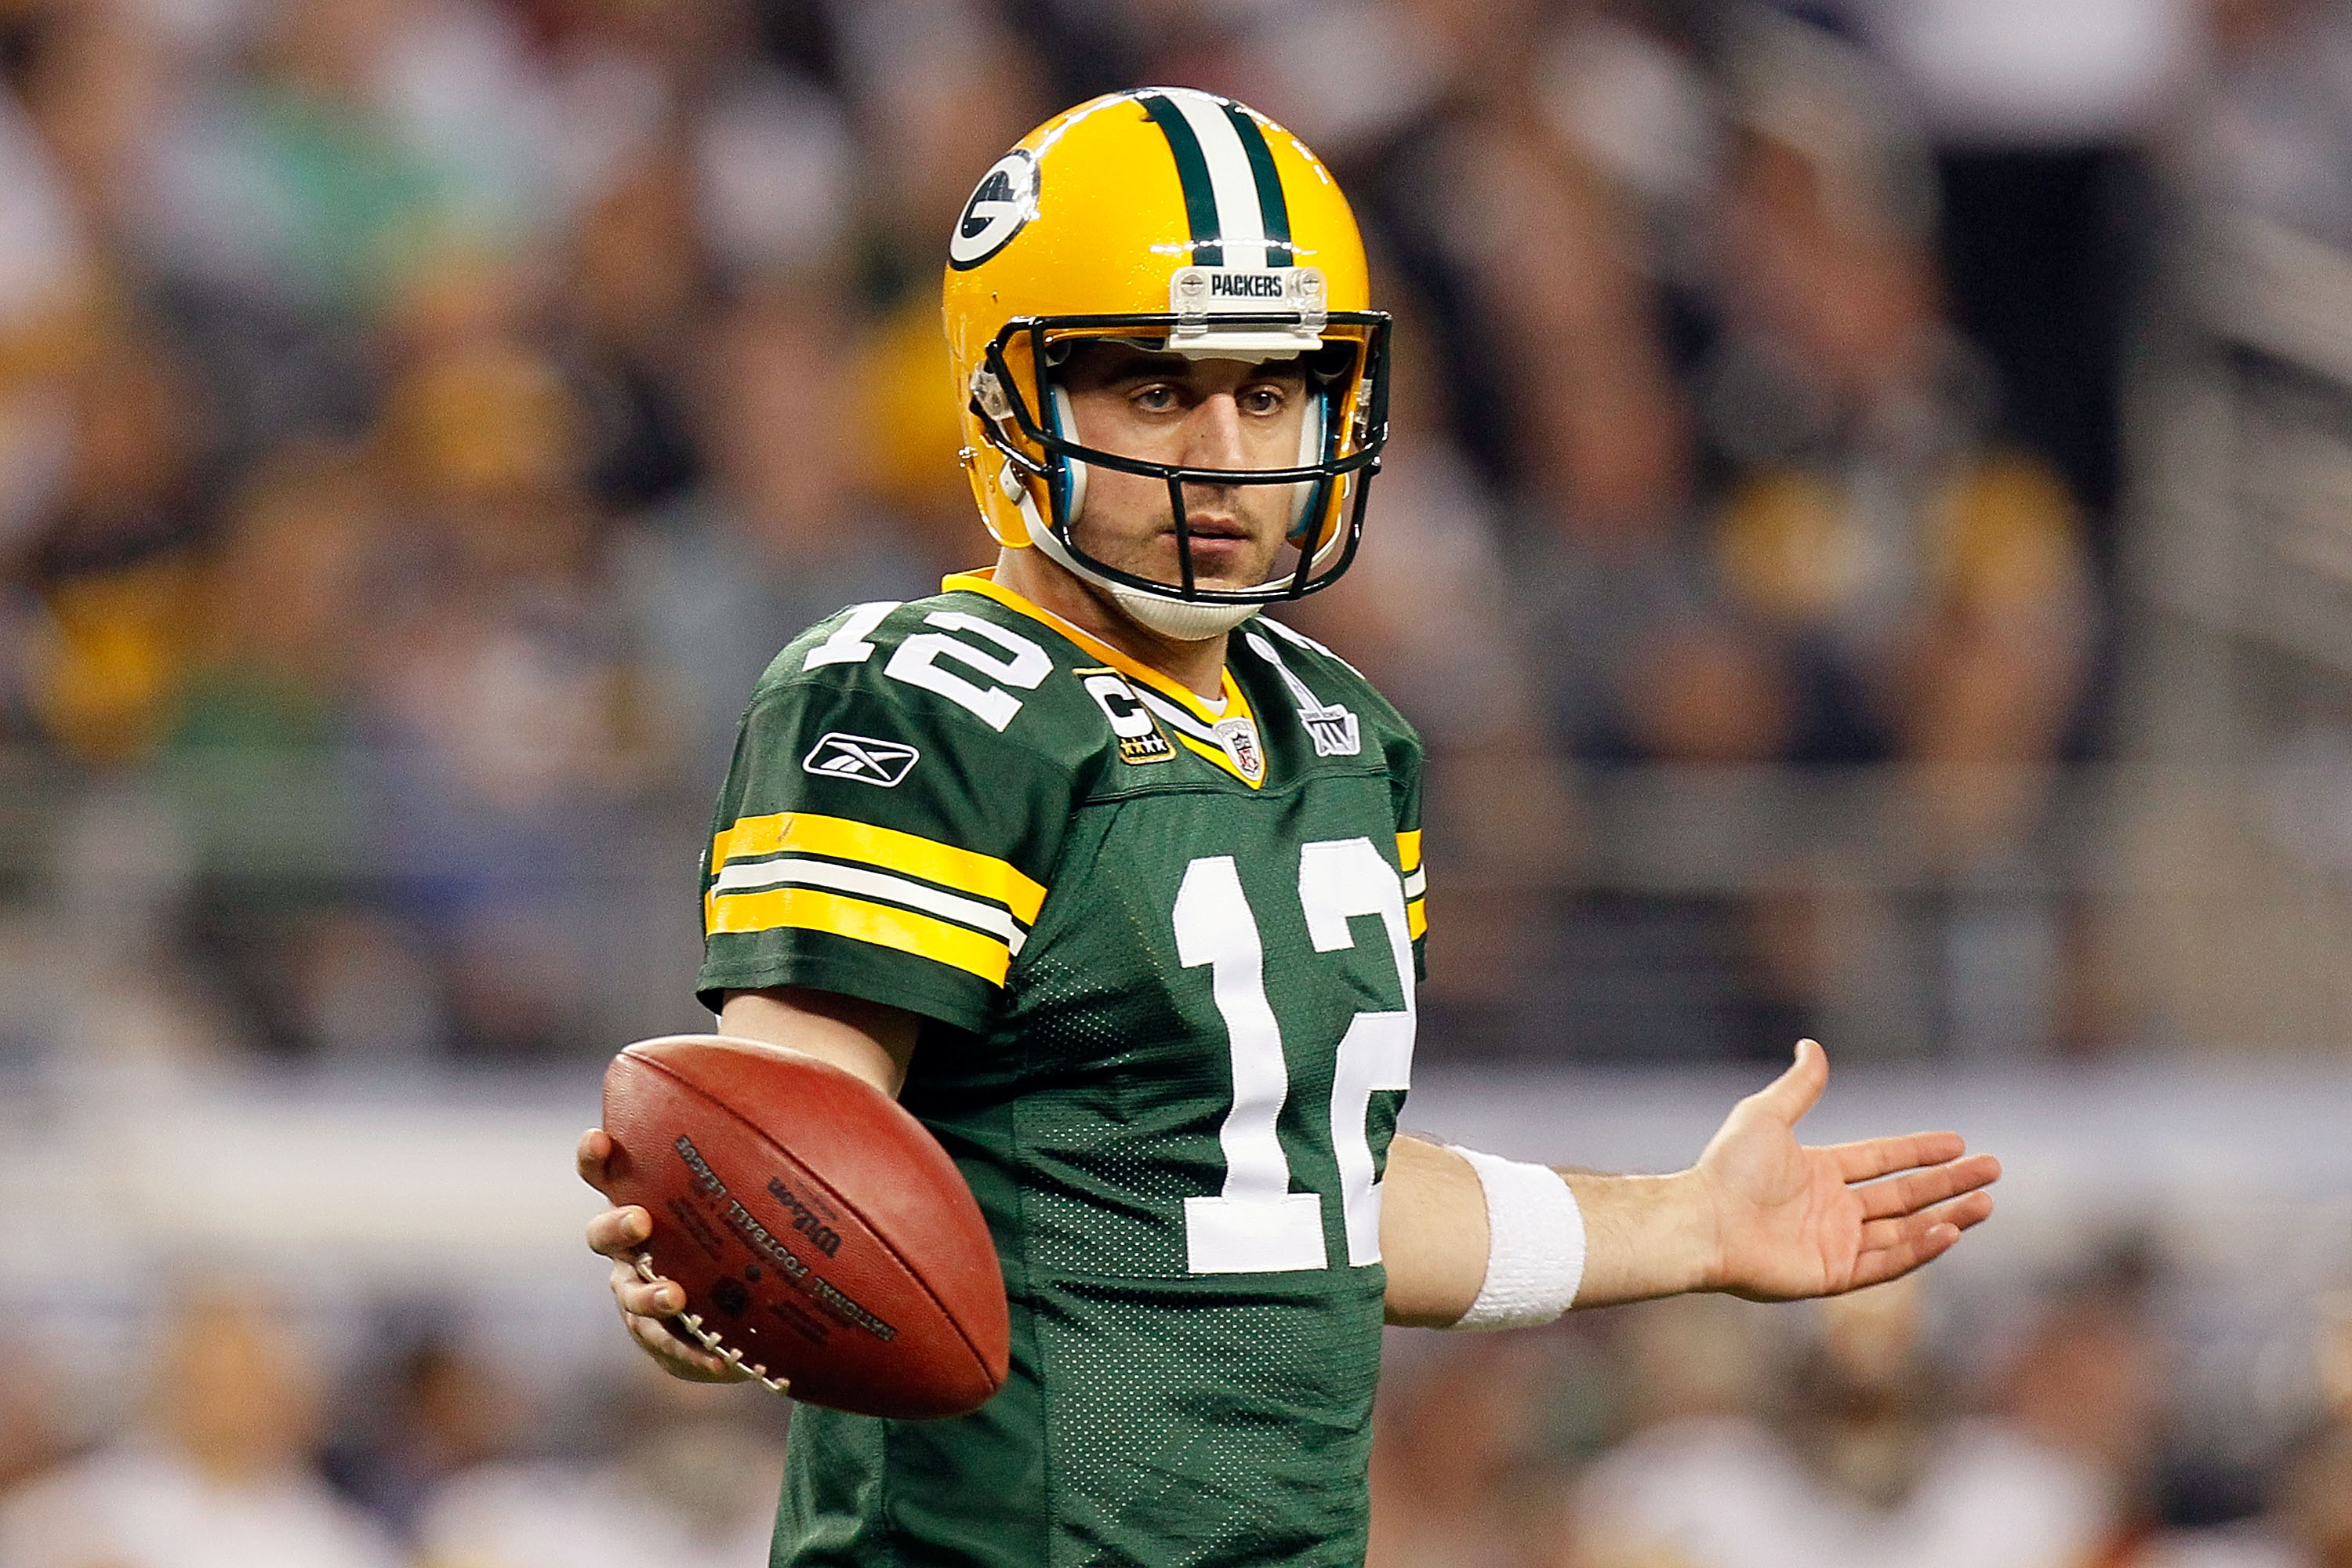 ARLINGTON, TX - FEBRUARY 06: Aaron Rodgers #12 of the Green Bay Packers looks to the sideline during the second half of Super Bowl XLV against the Pittsburgh Steelers at Cowboys Stadium on February 6, 2011 in Arlington, Texas.  (Photo by Kevin C. Cox/Gett